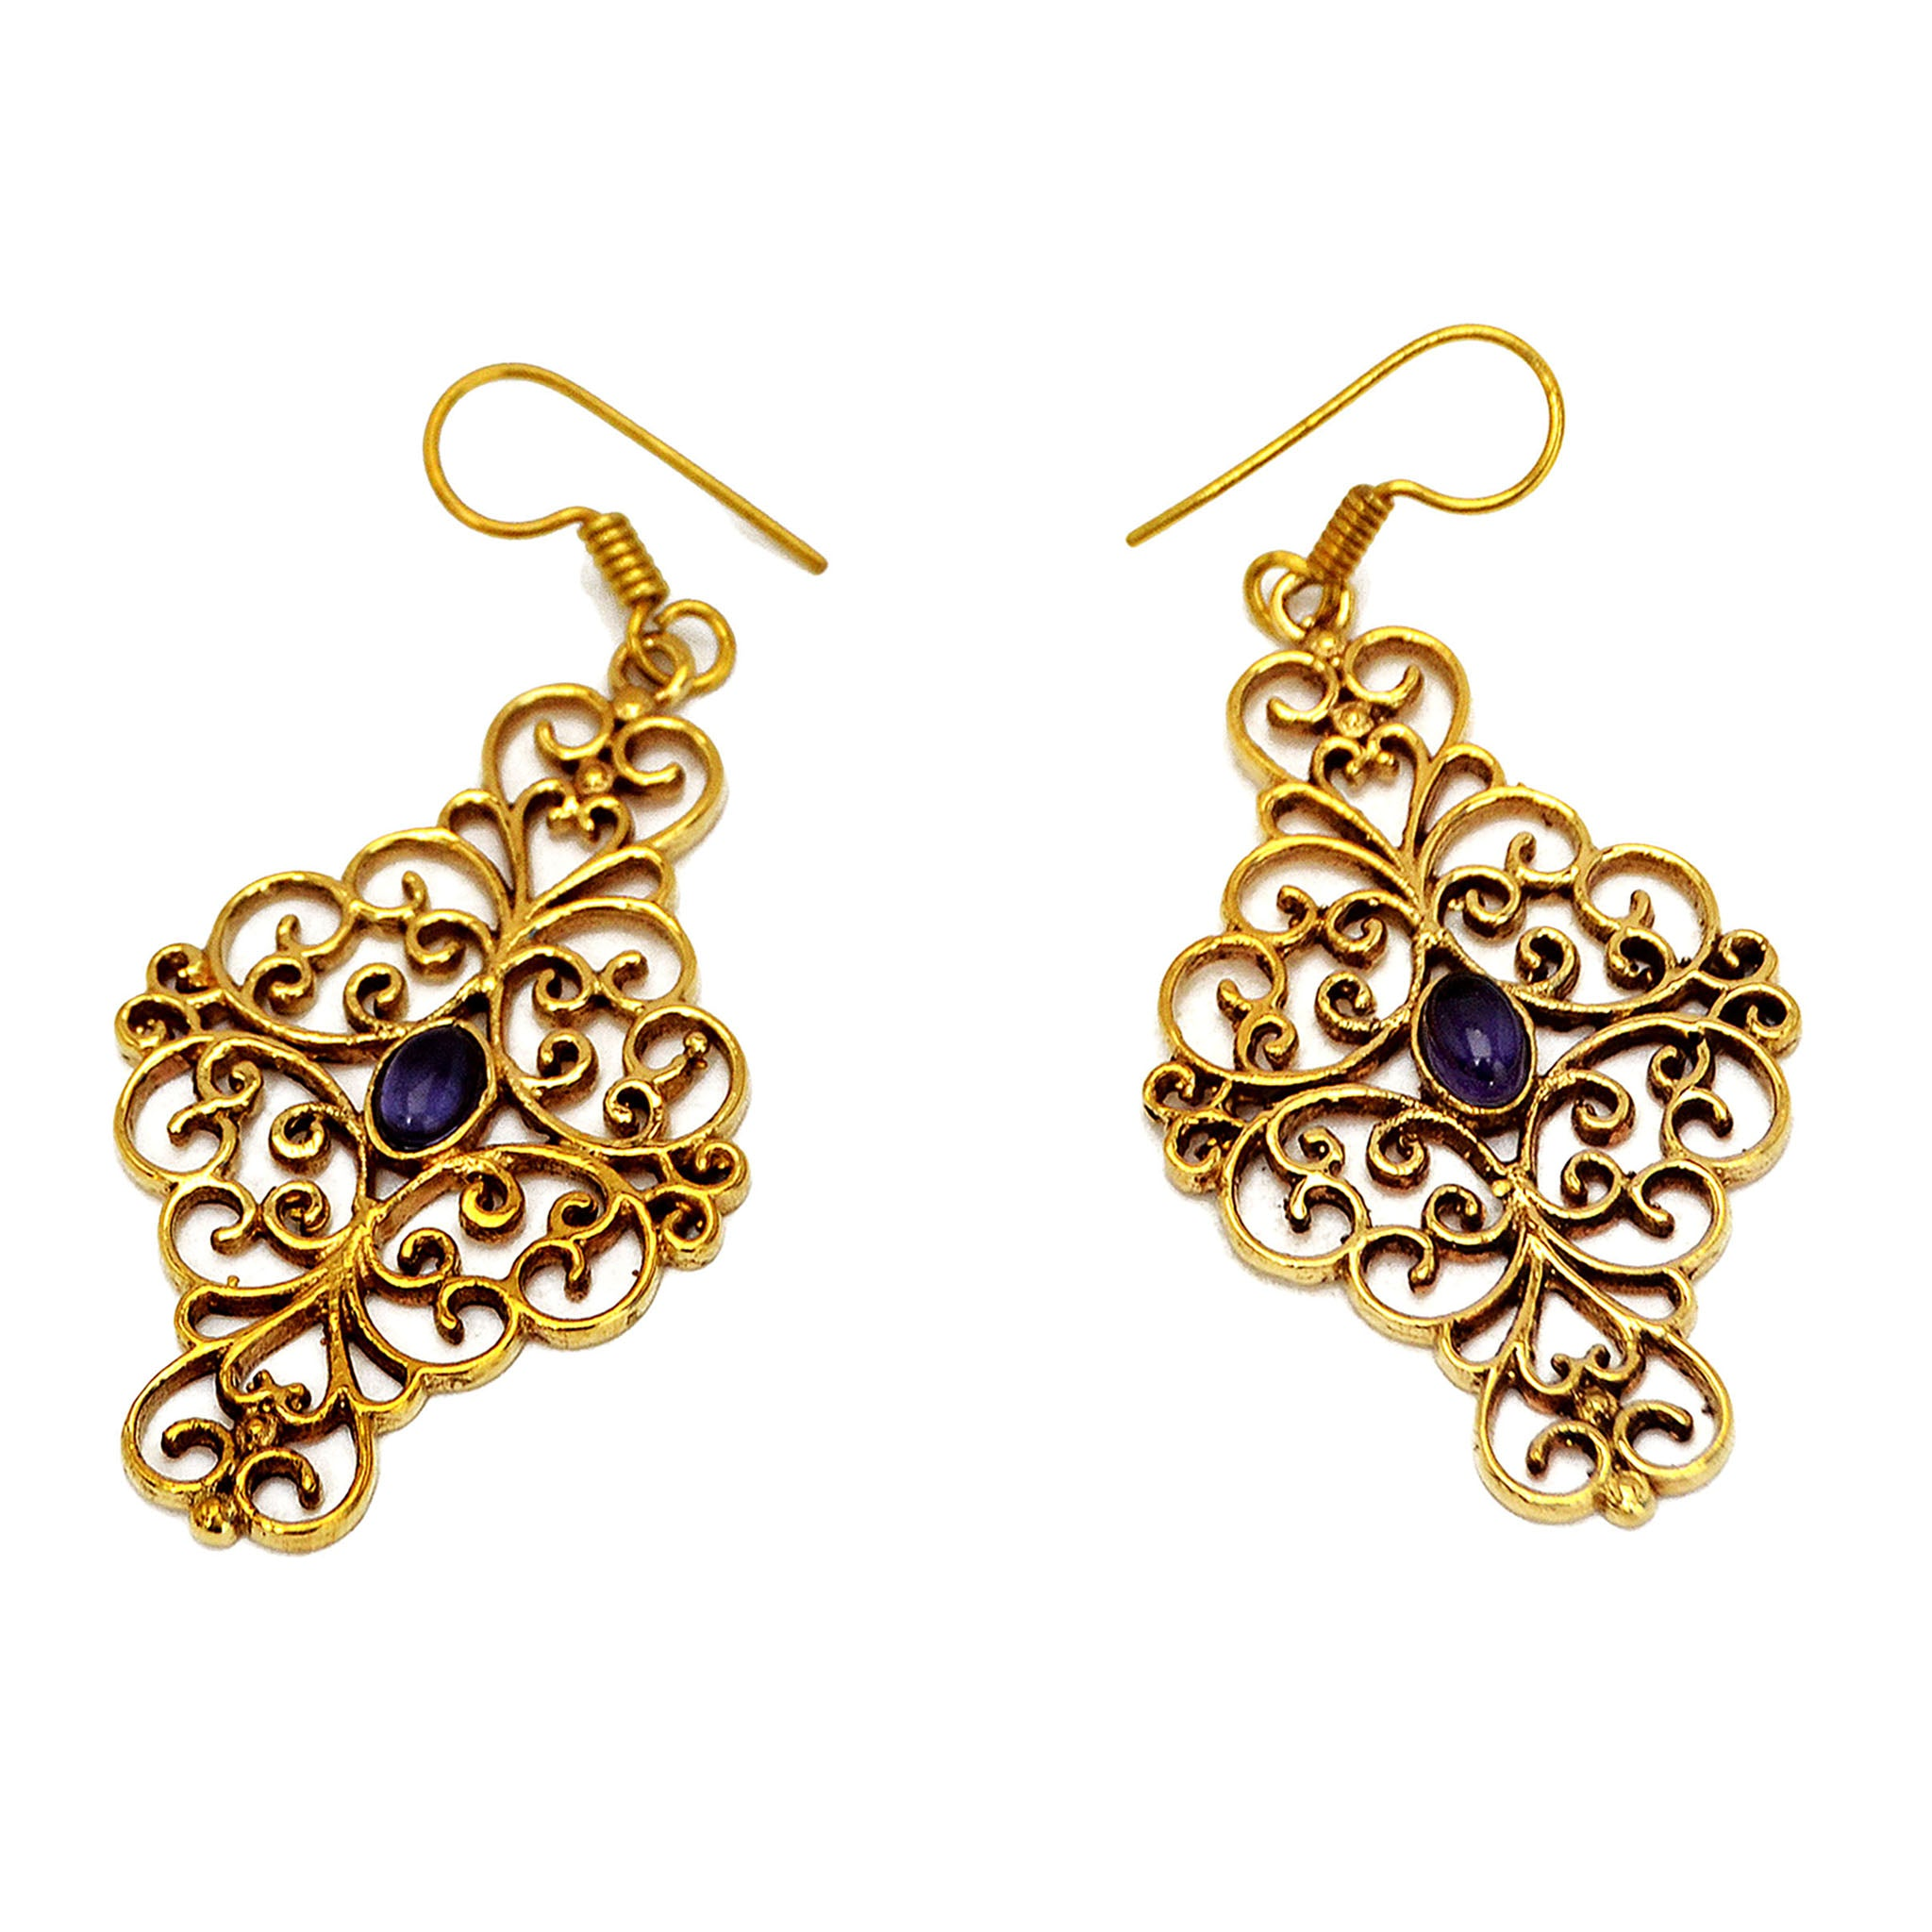 Vintage Filigree Earrings